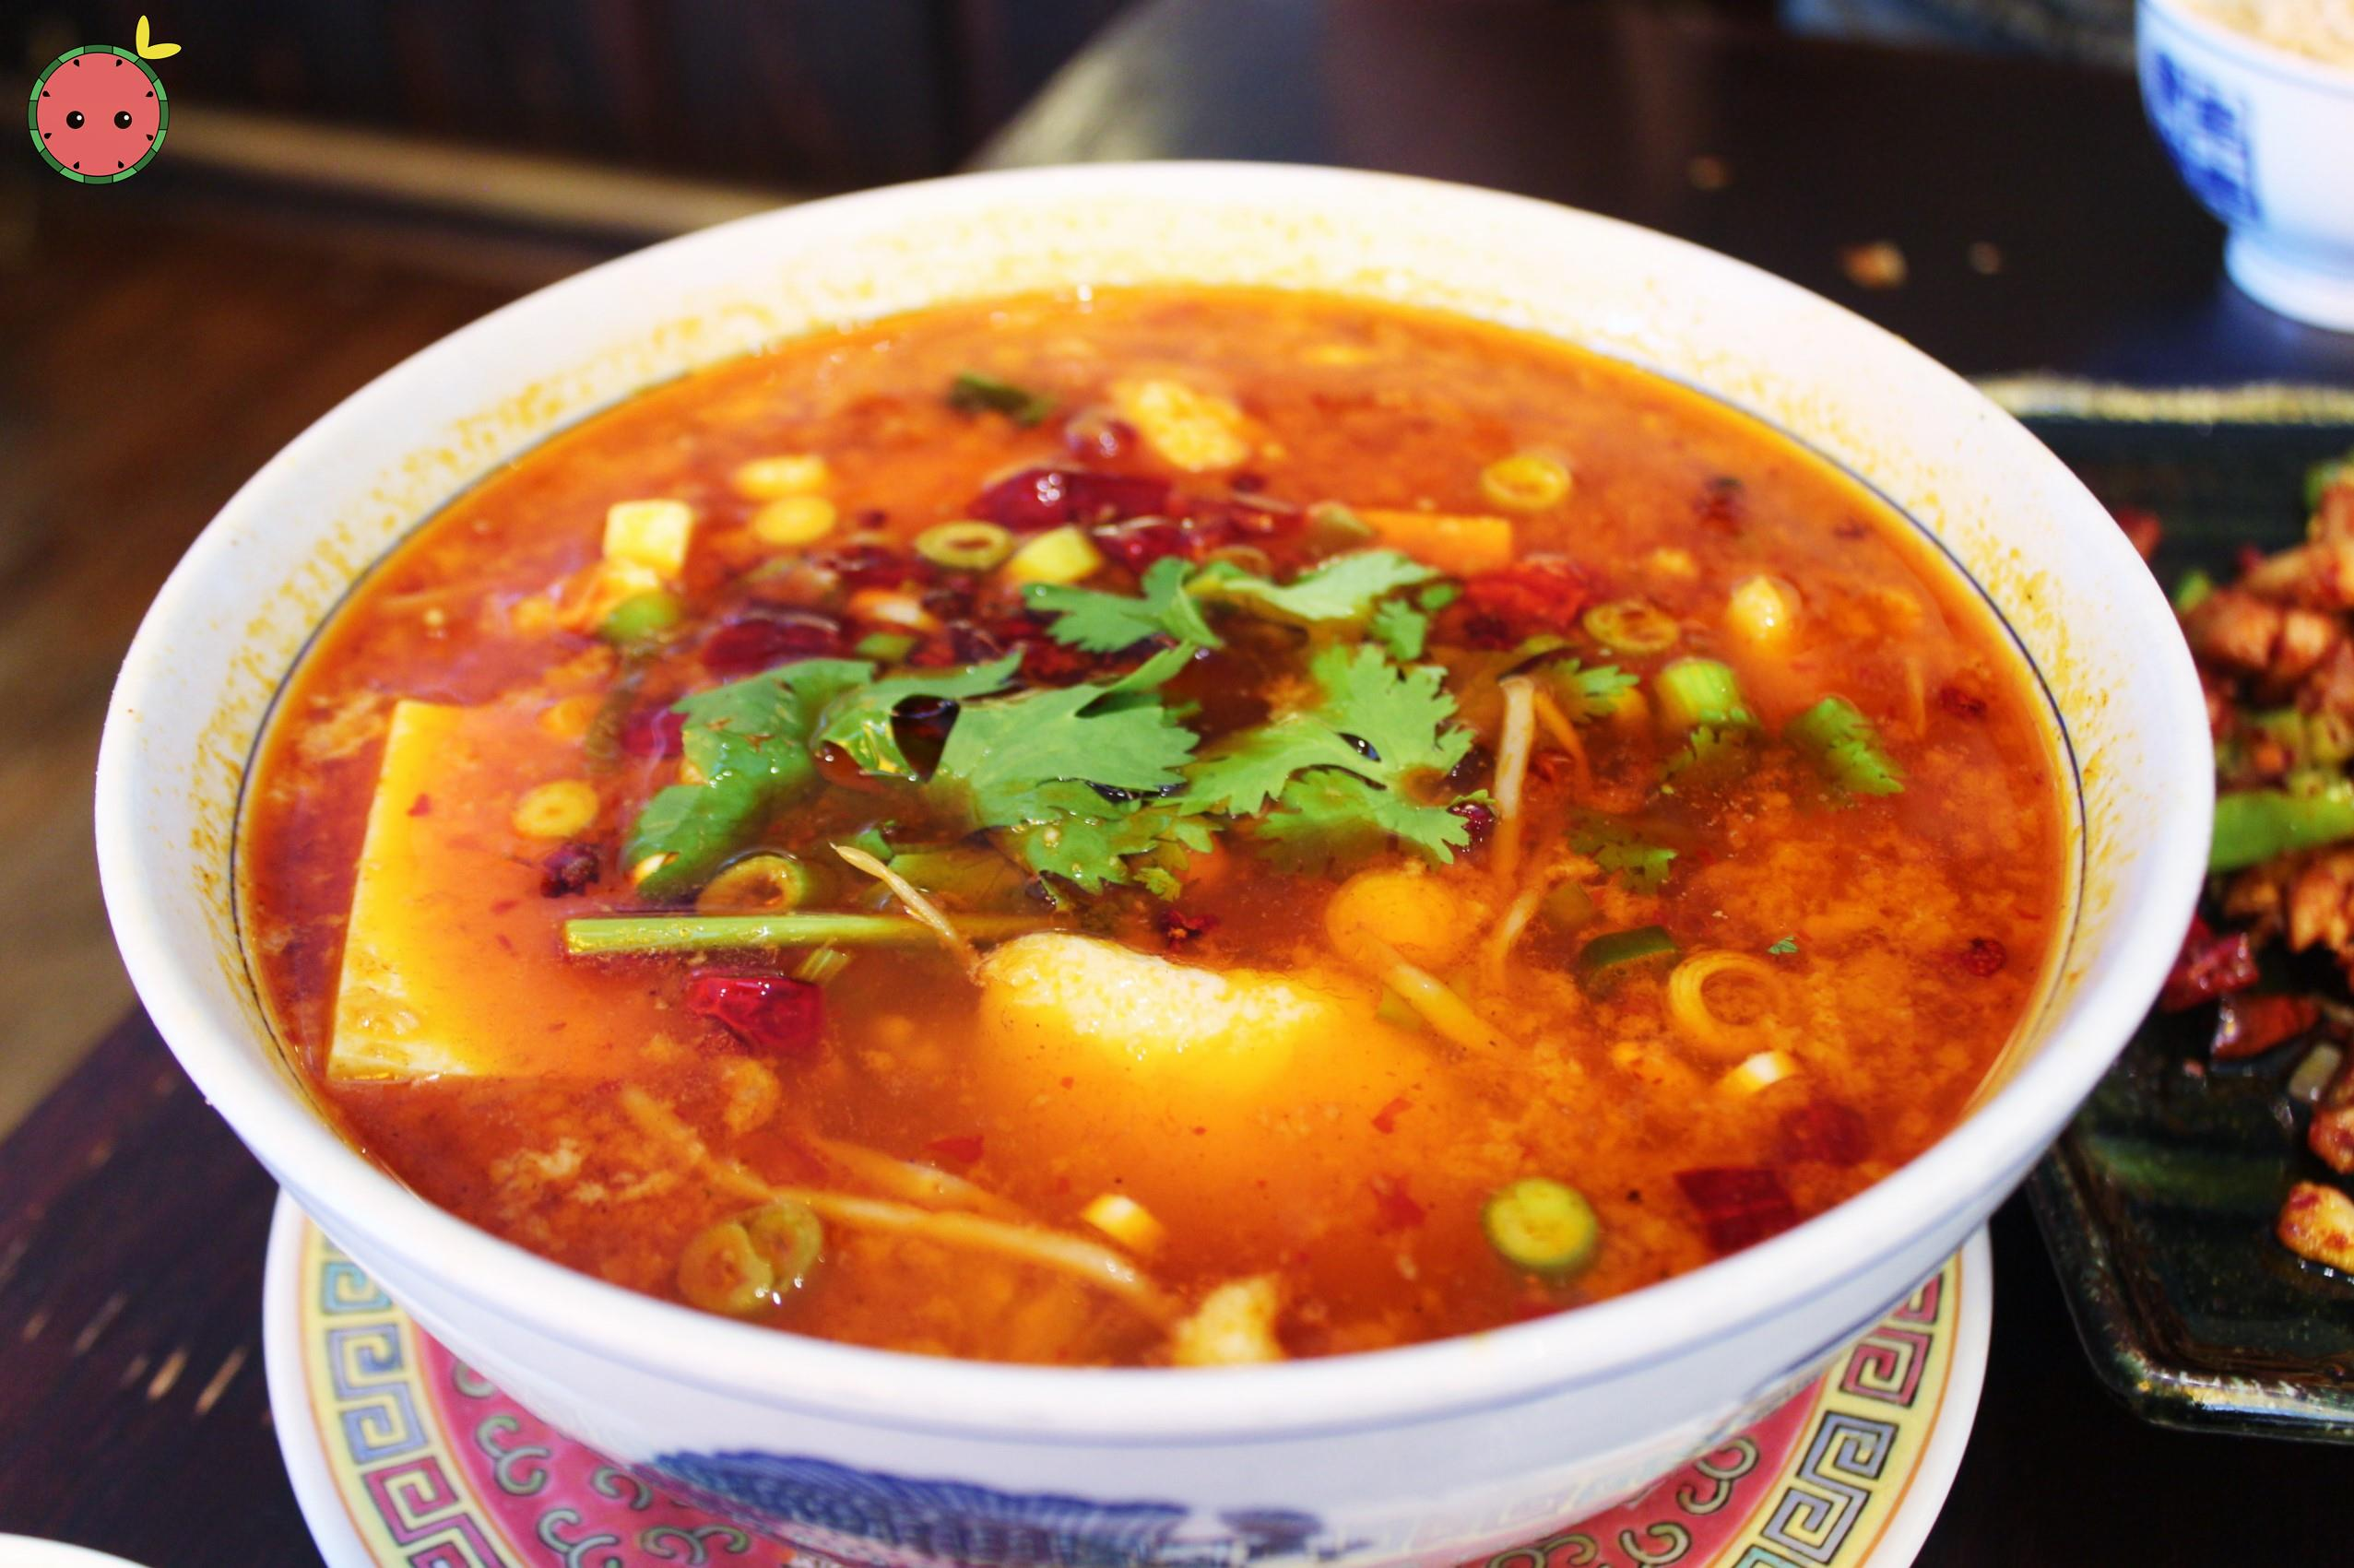 Chungking Braised Fish in Red Soup - Tilapia or fillets of sole with chili oil and peppercorn